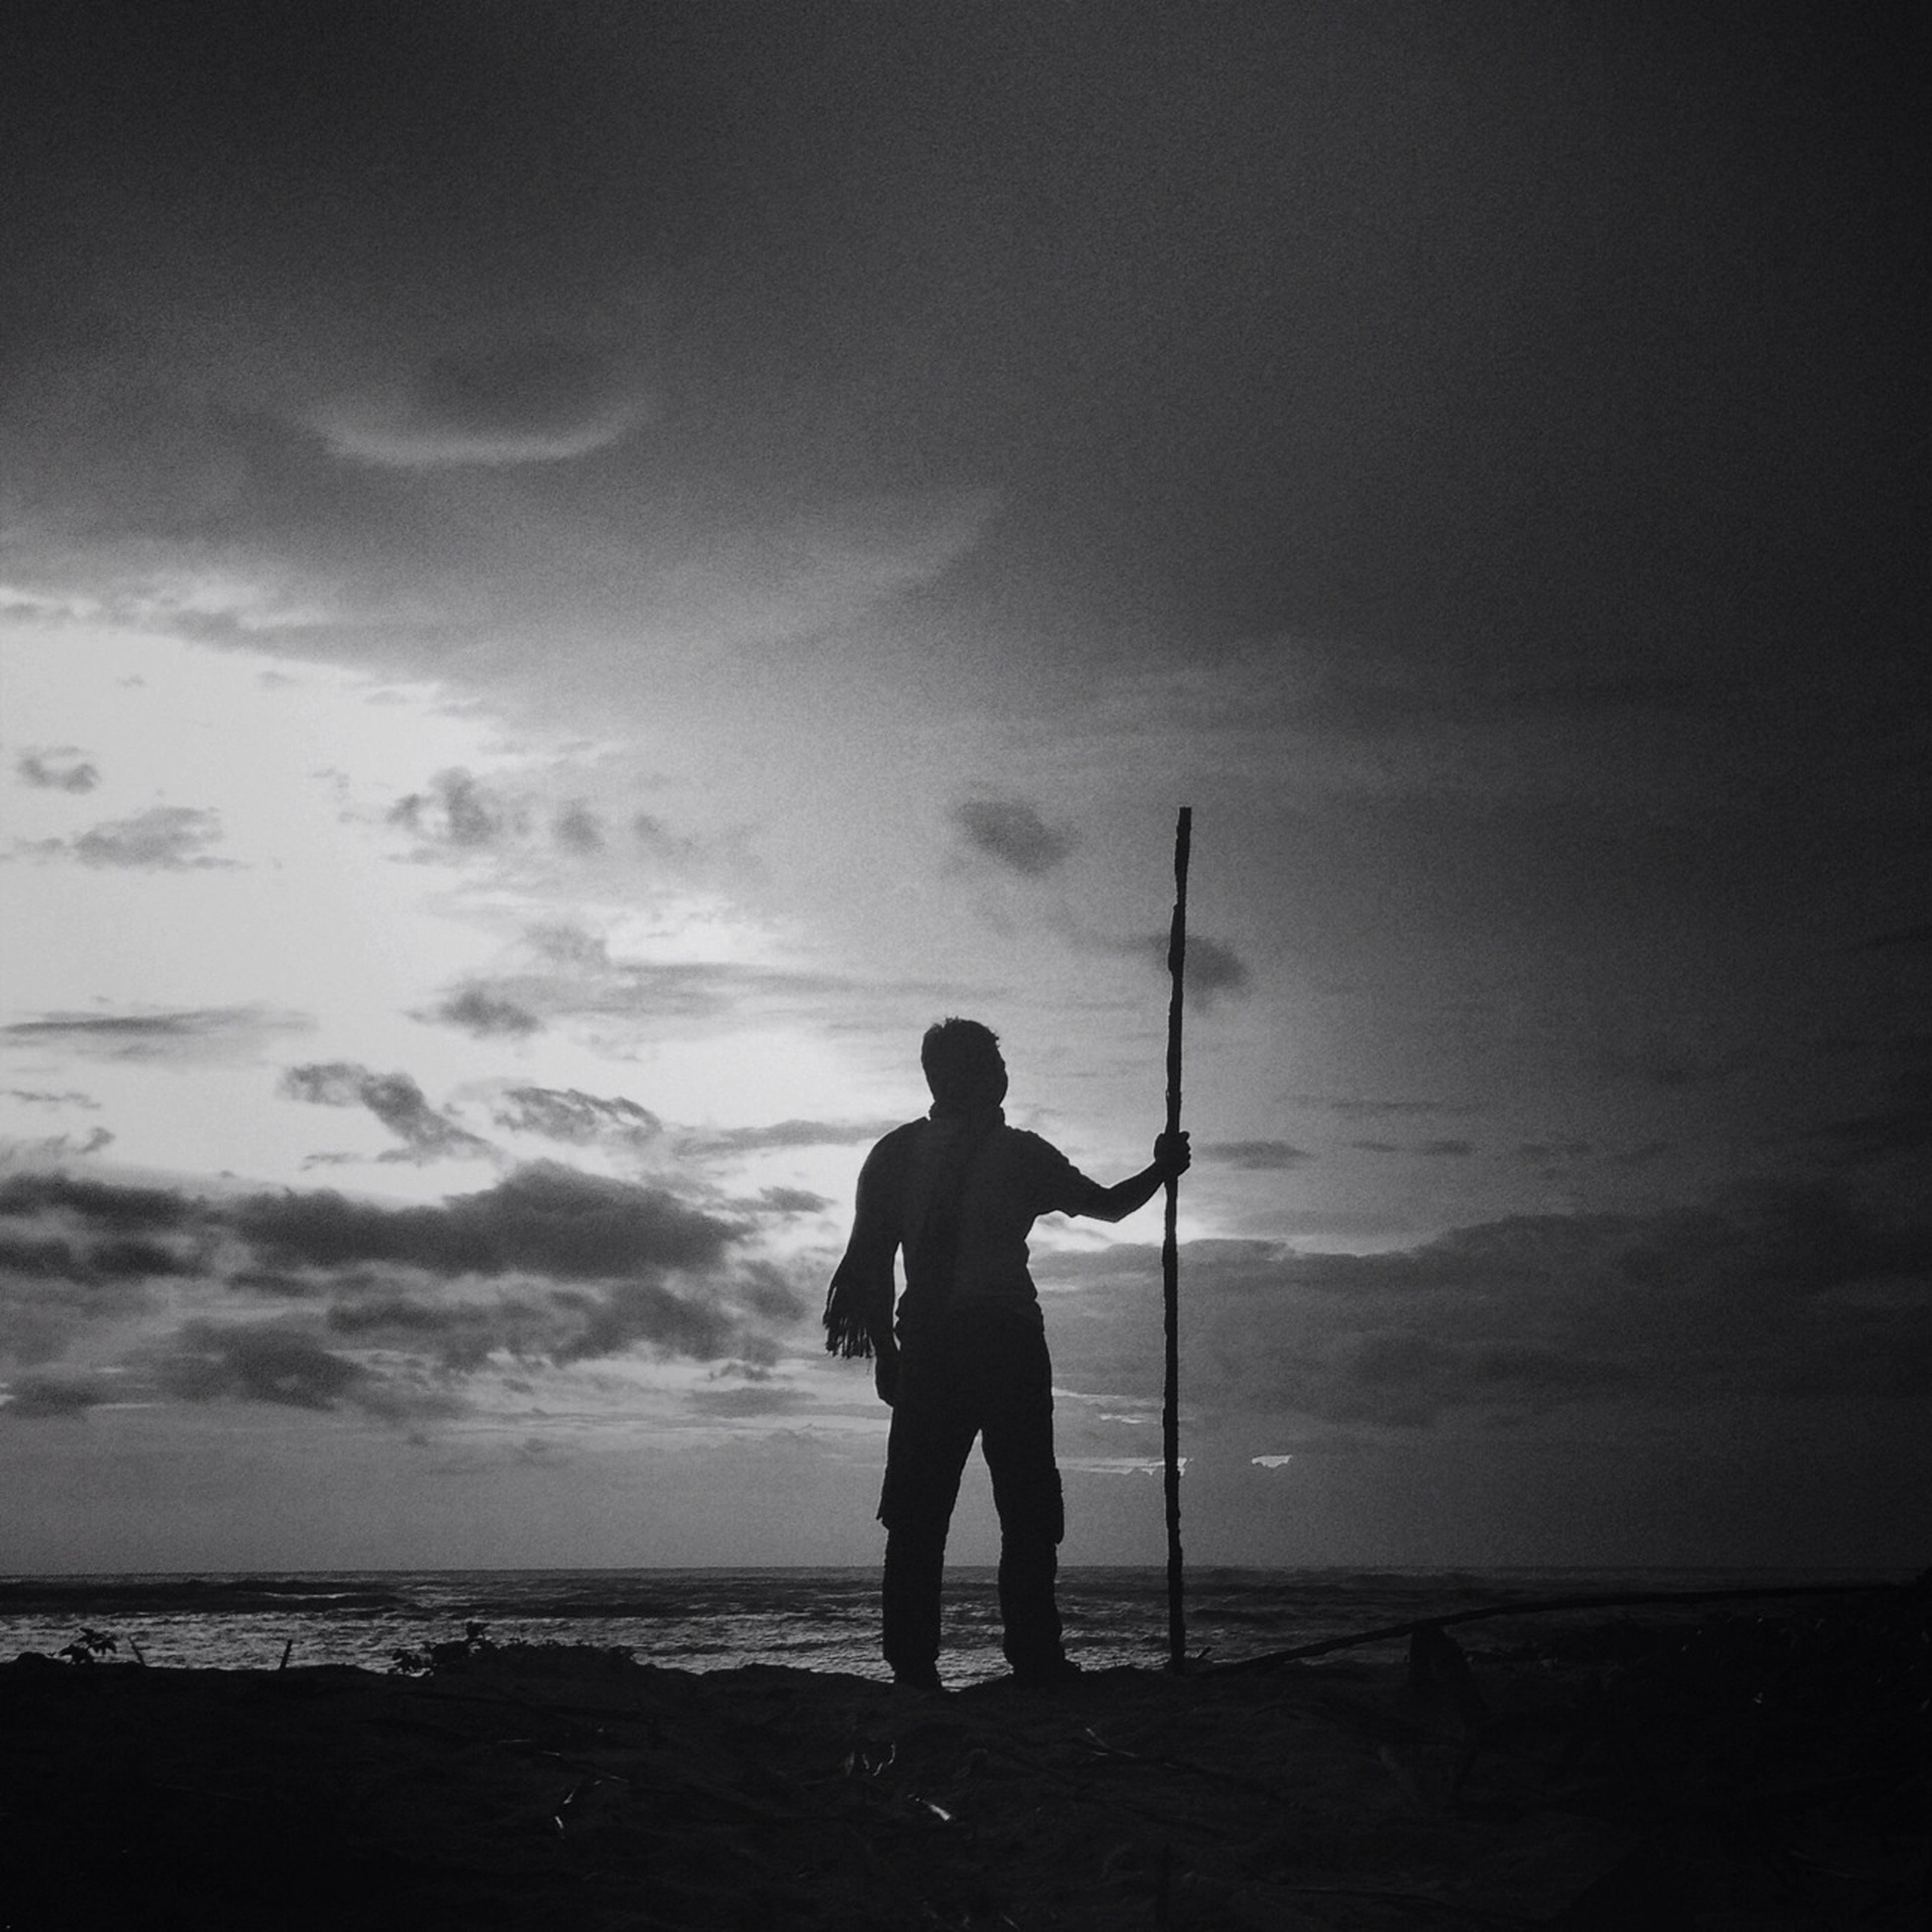 sea, horizon over water, beach, water, sky, silhouette, shore, full length, standing, lifestyles, leisure activity, rear view, tranquility, scenics, tranquil scene, beauty in nature, men, nature